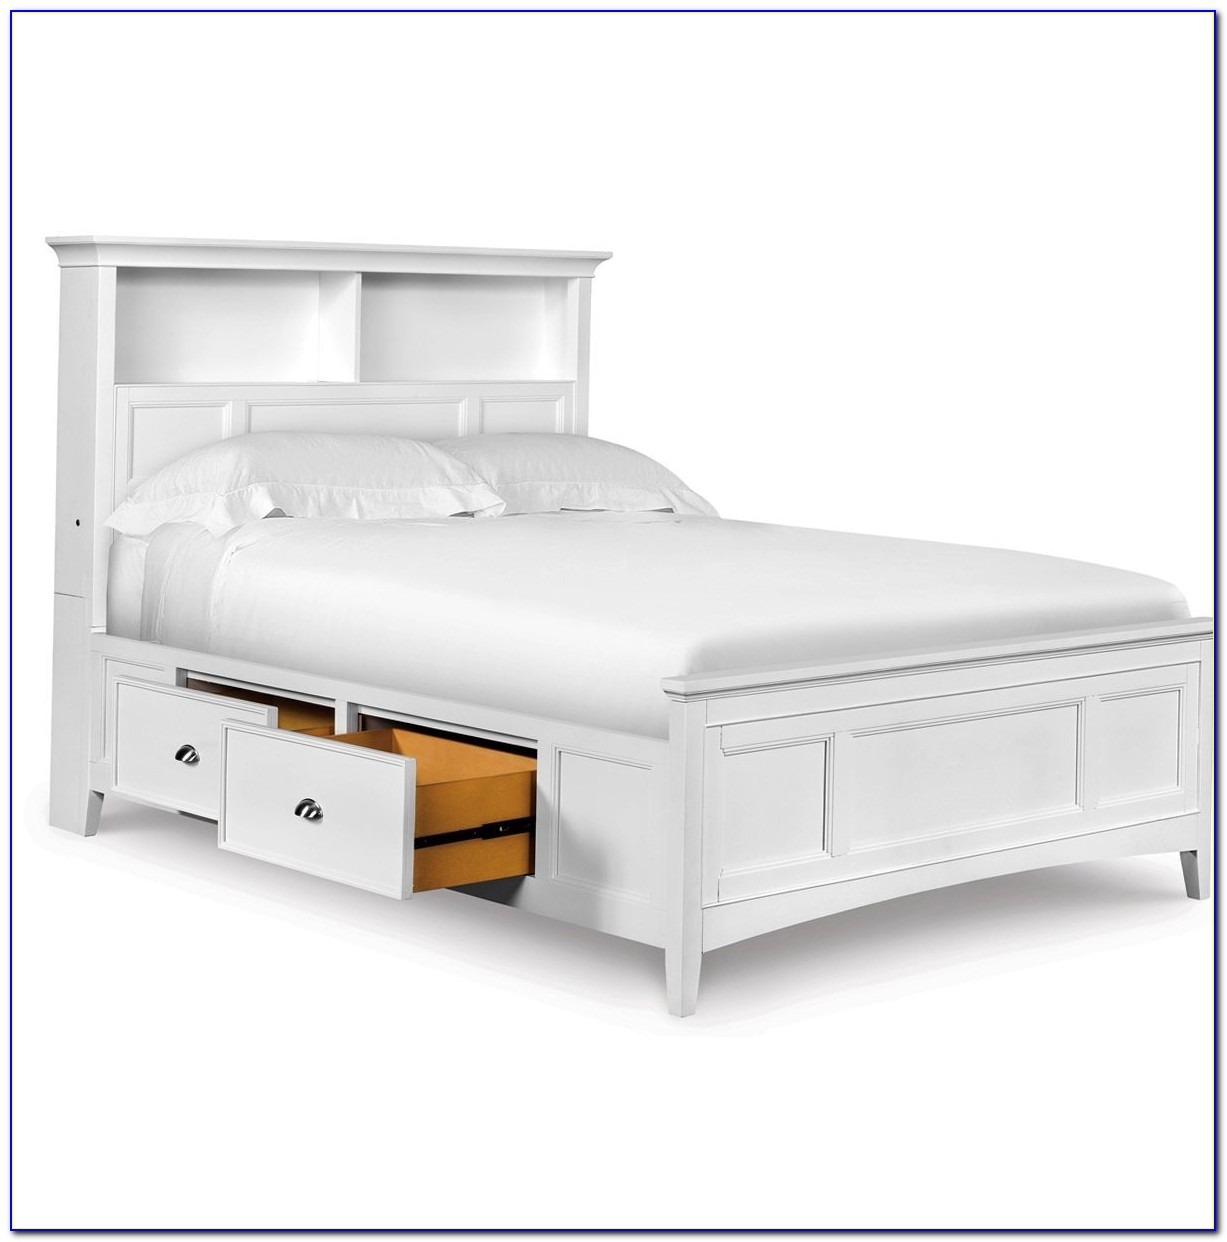 Cal King Bed Frame With Headboard And Footboard